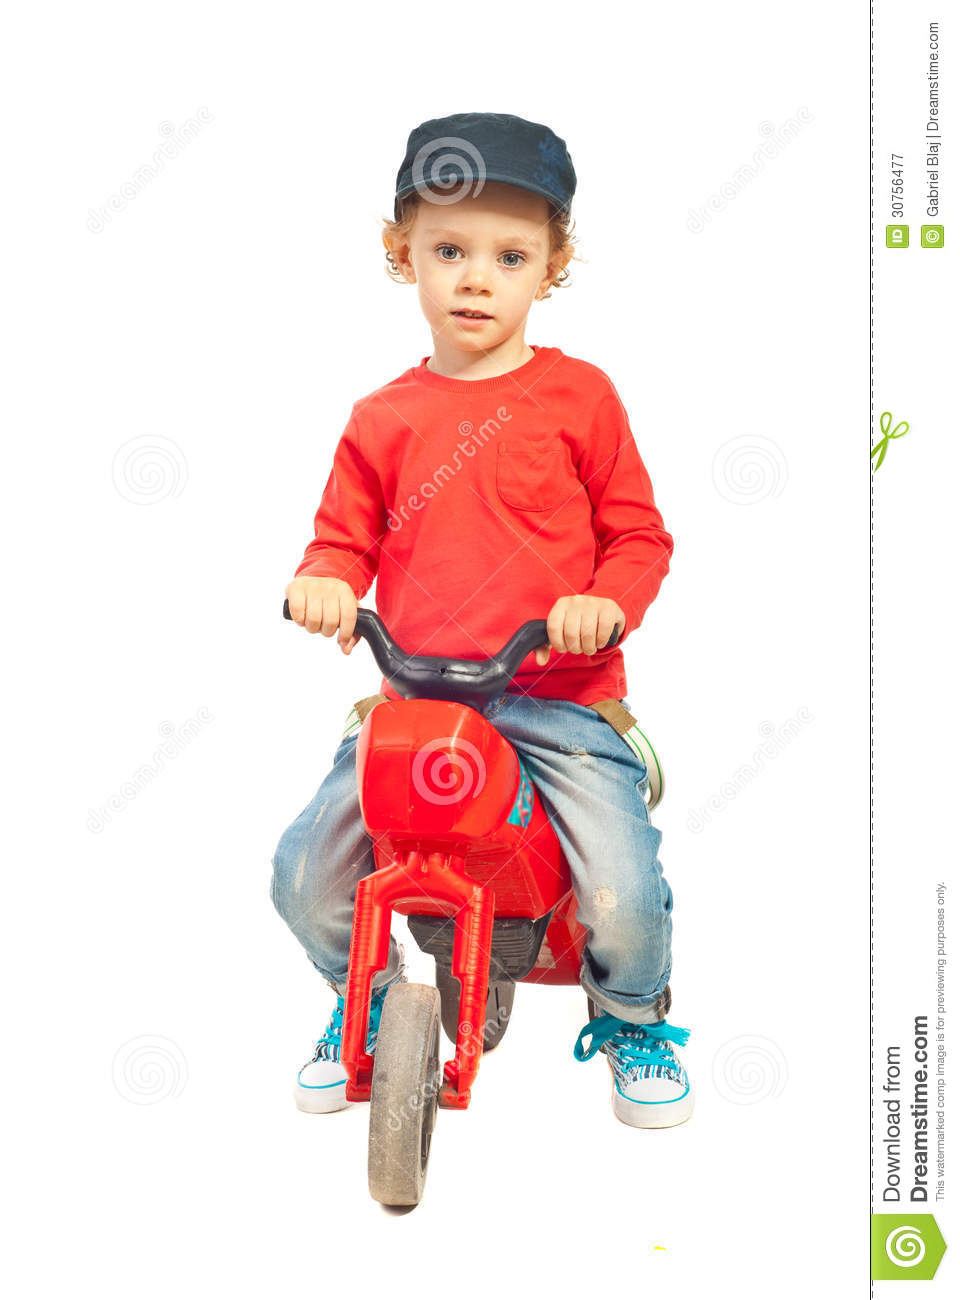 Boys Riding Toys For Toddlers : Modern toddler with bike royalty free stock photography